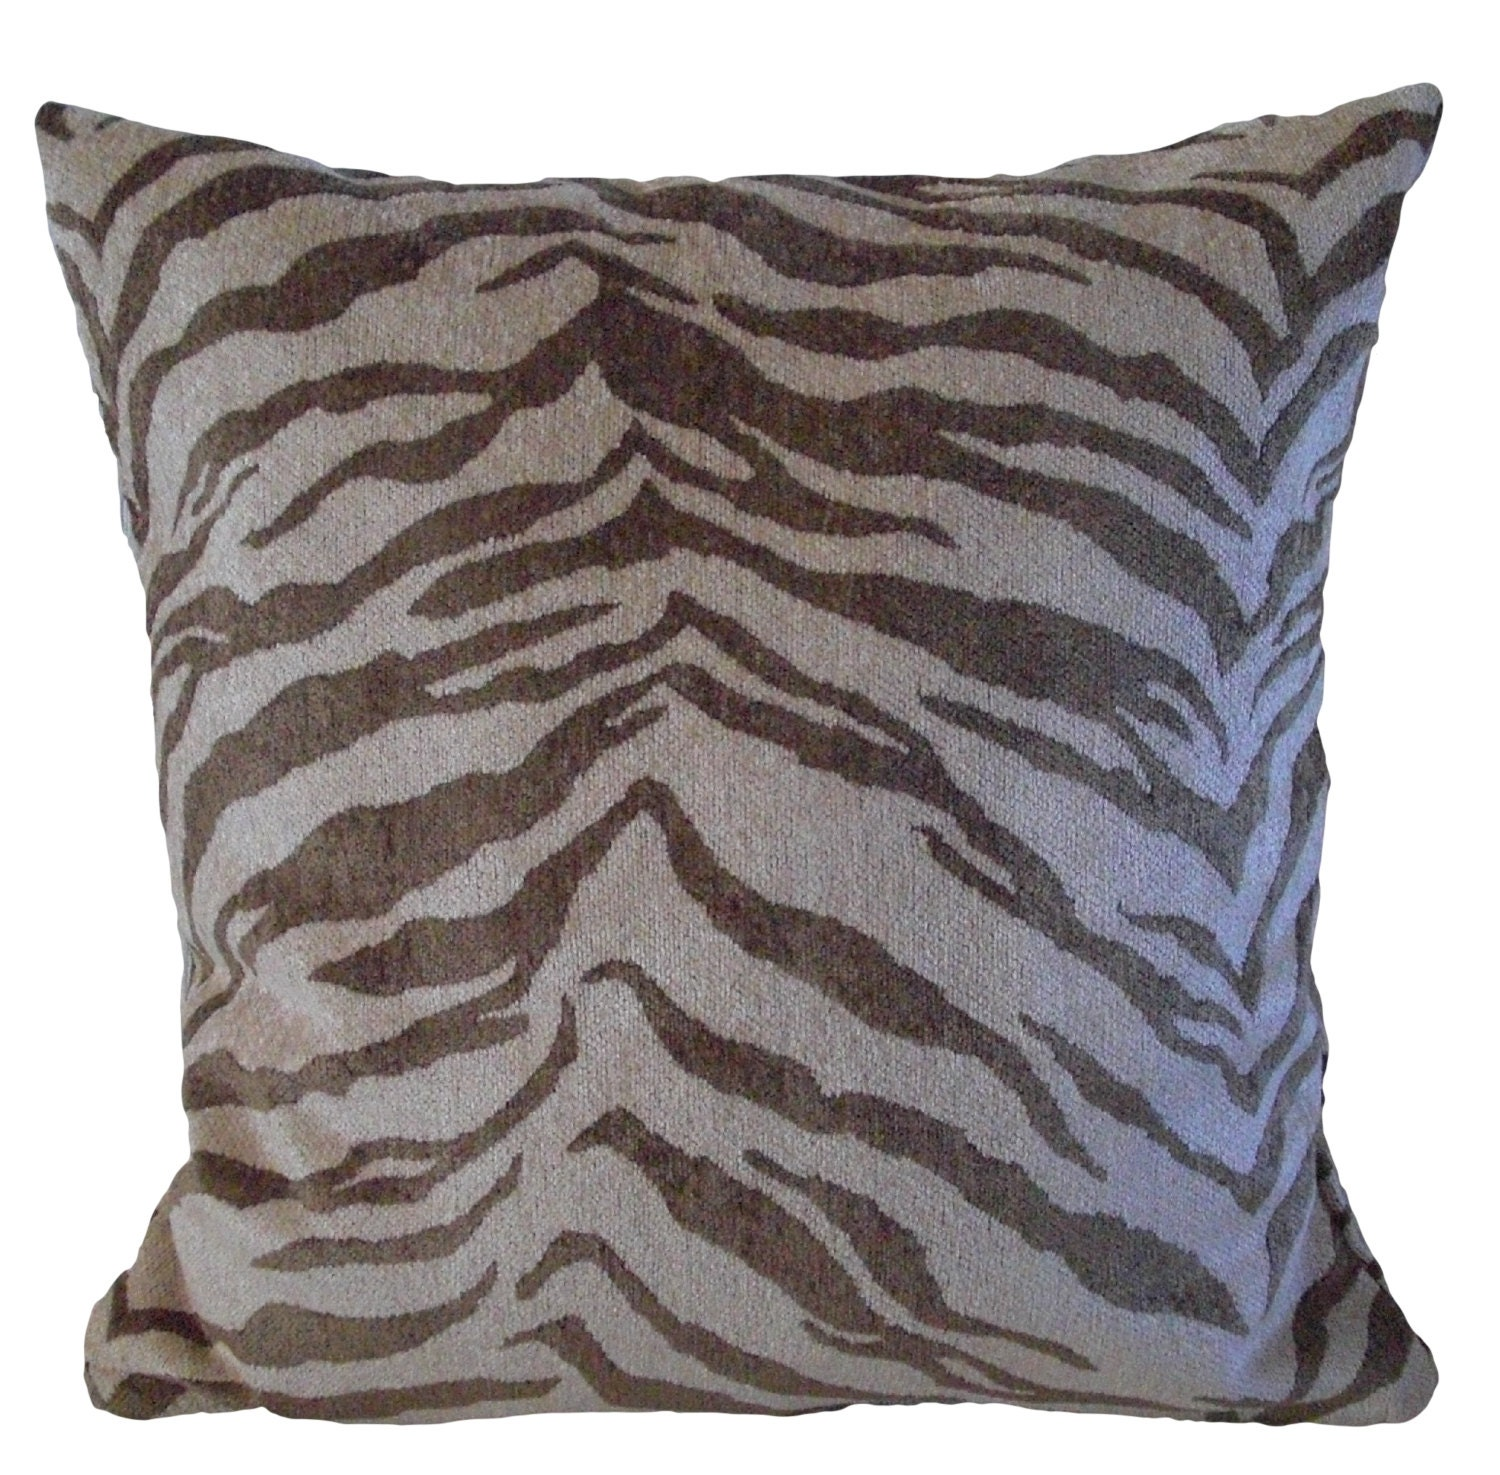 Kuwaha Zebra Animal Print Decorative Throw Pillow Cover; Brown, Beige